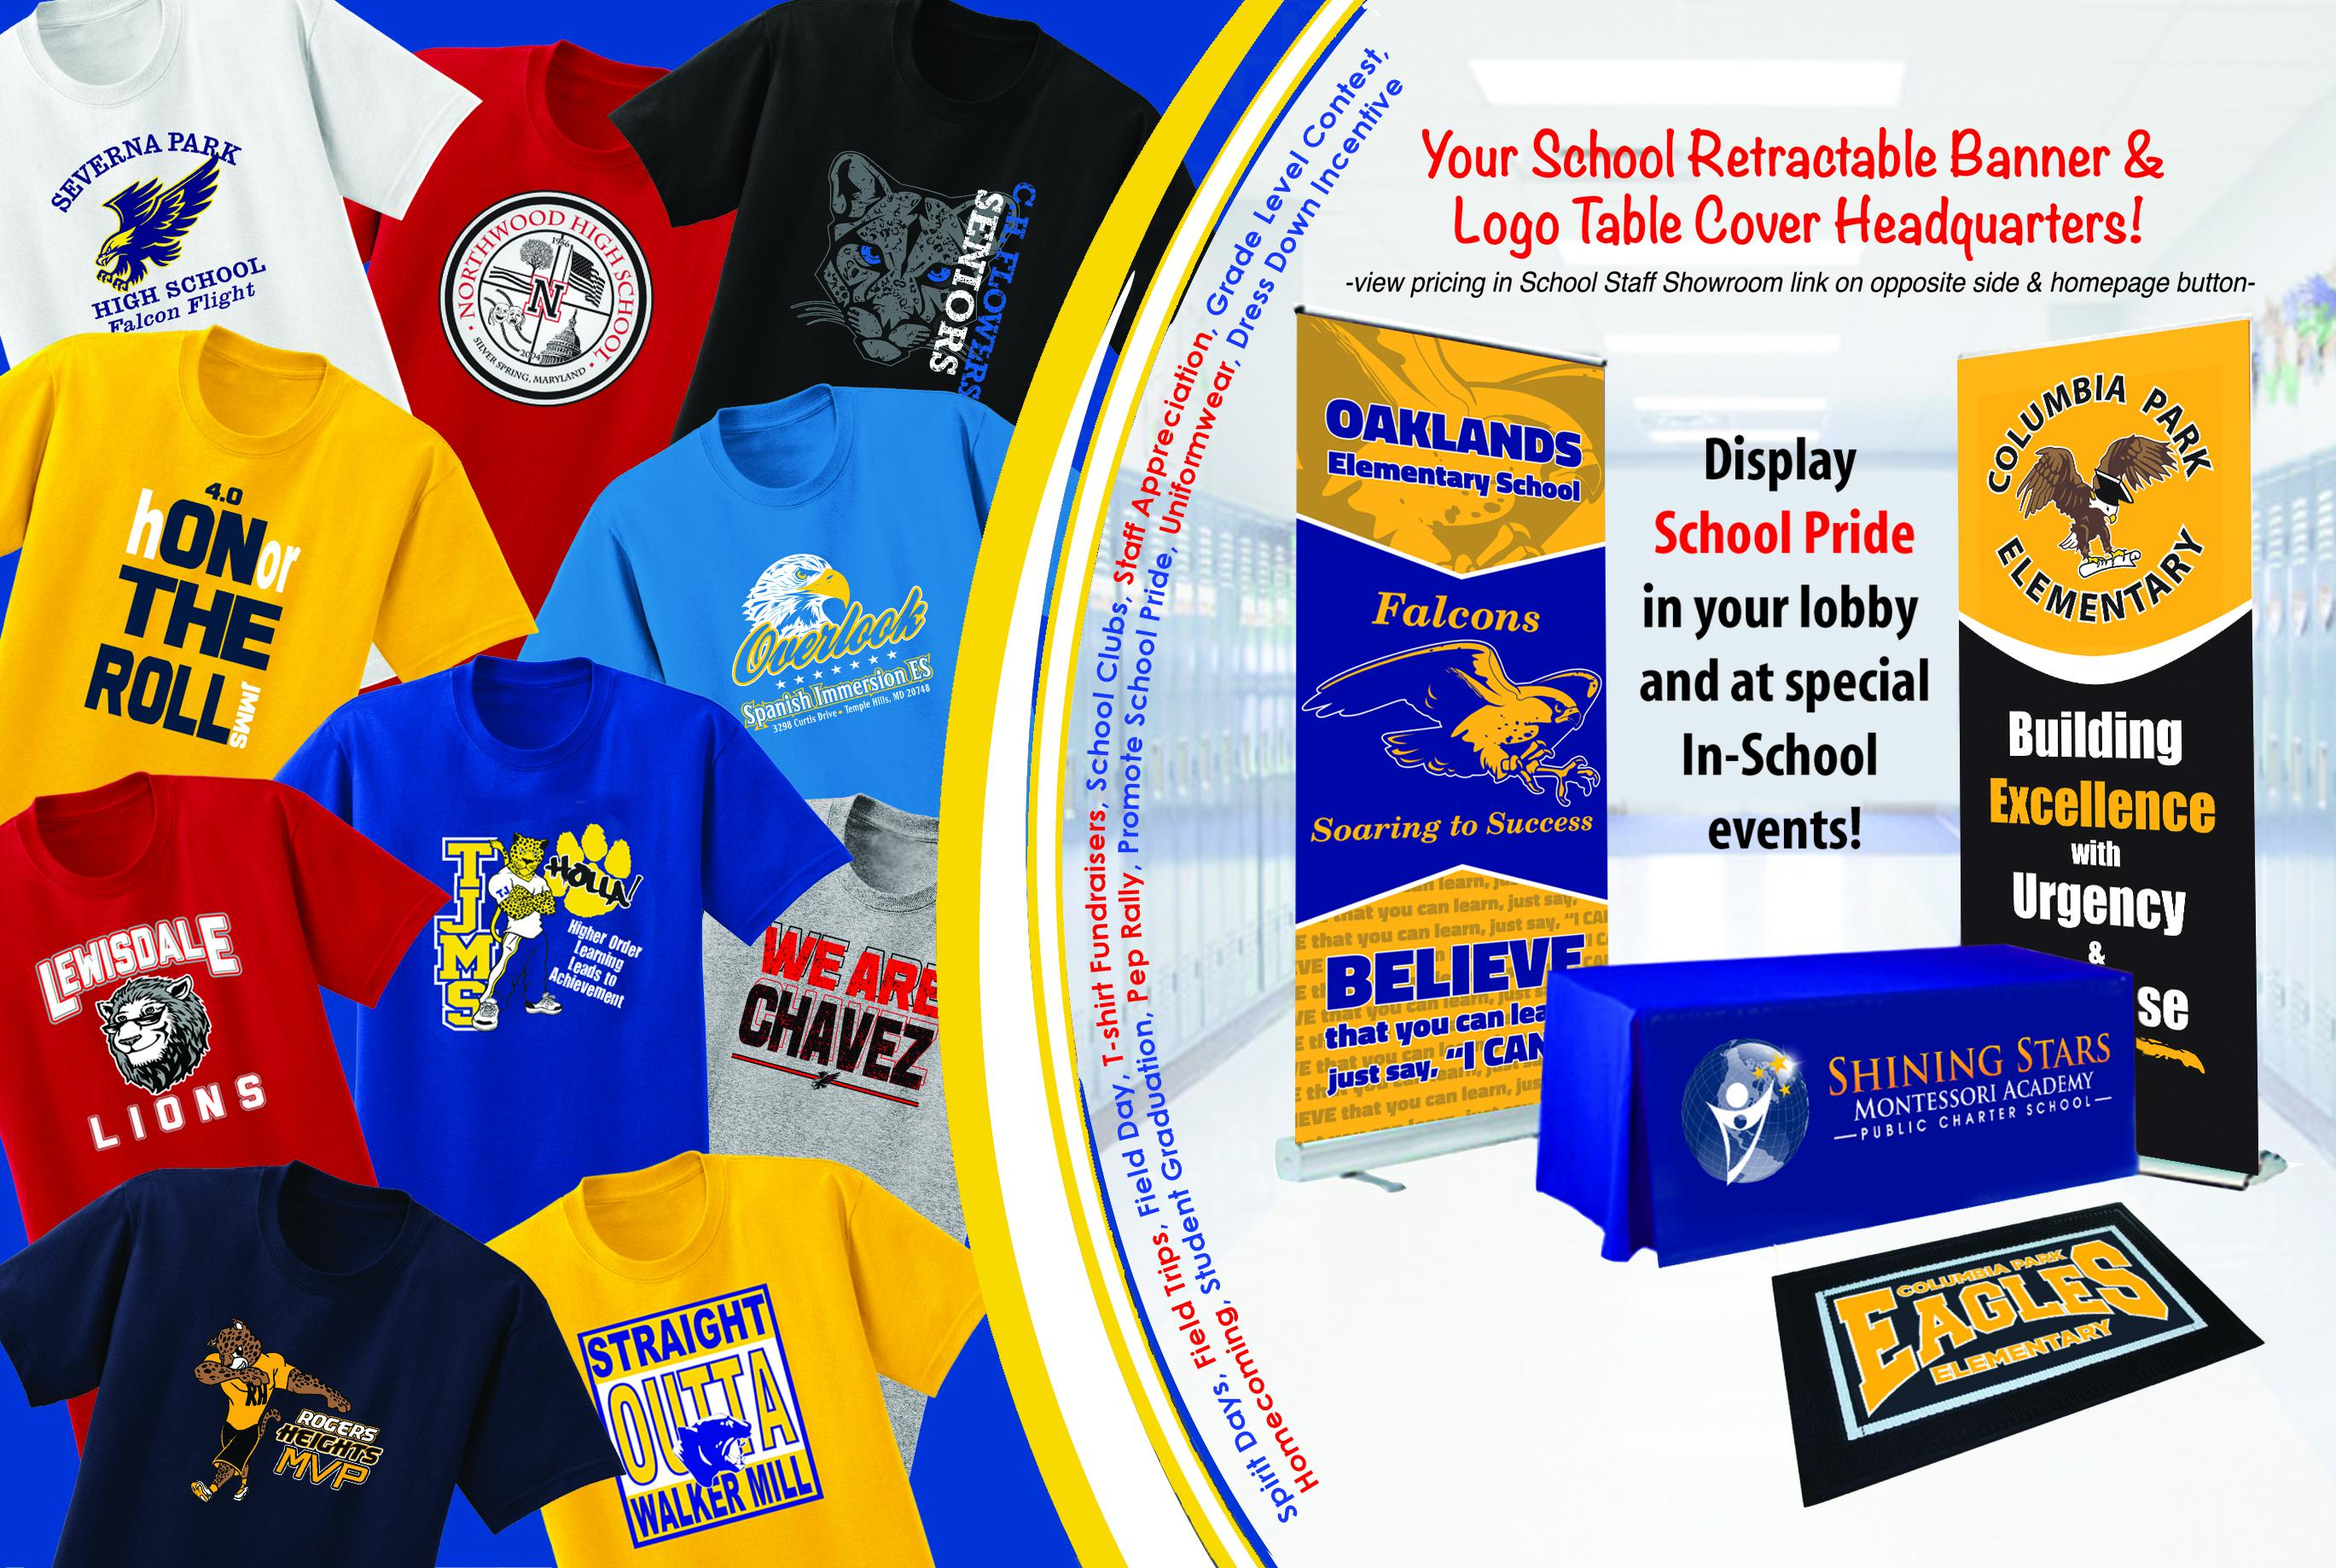 School Staff Apparel Banner